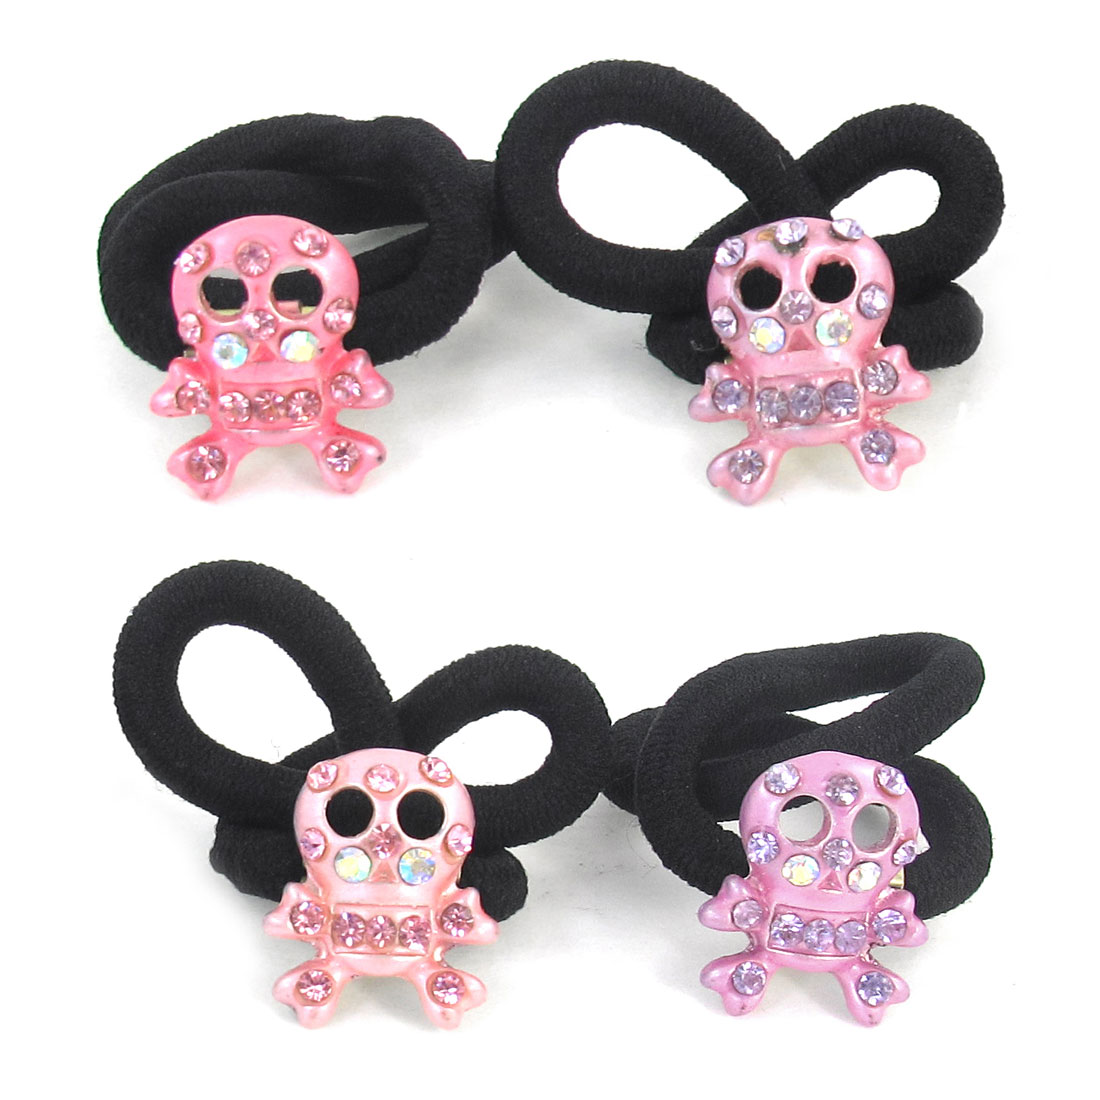 4 Pcs Kids Colored Rhinestone Inlaid Skull Head Accent Elastic Rubber Hair Band Tie